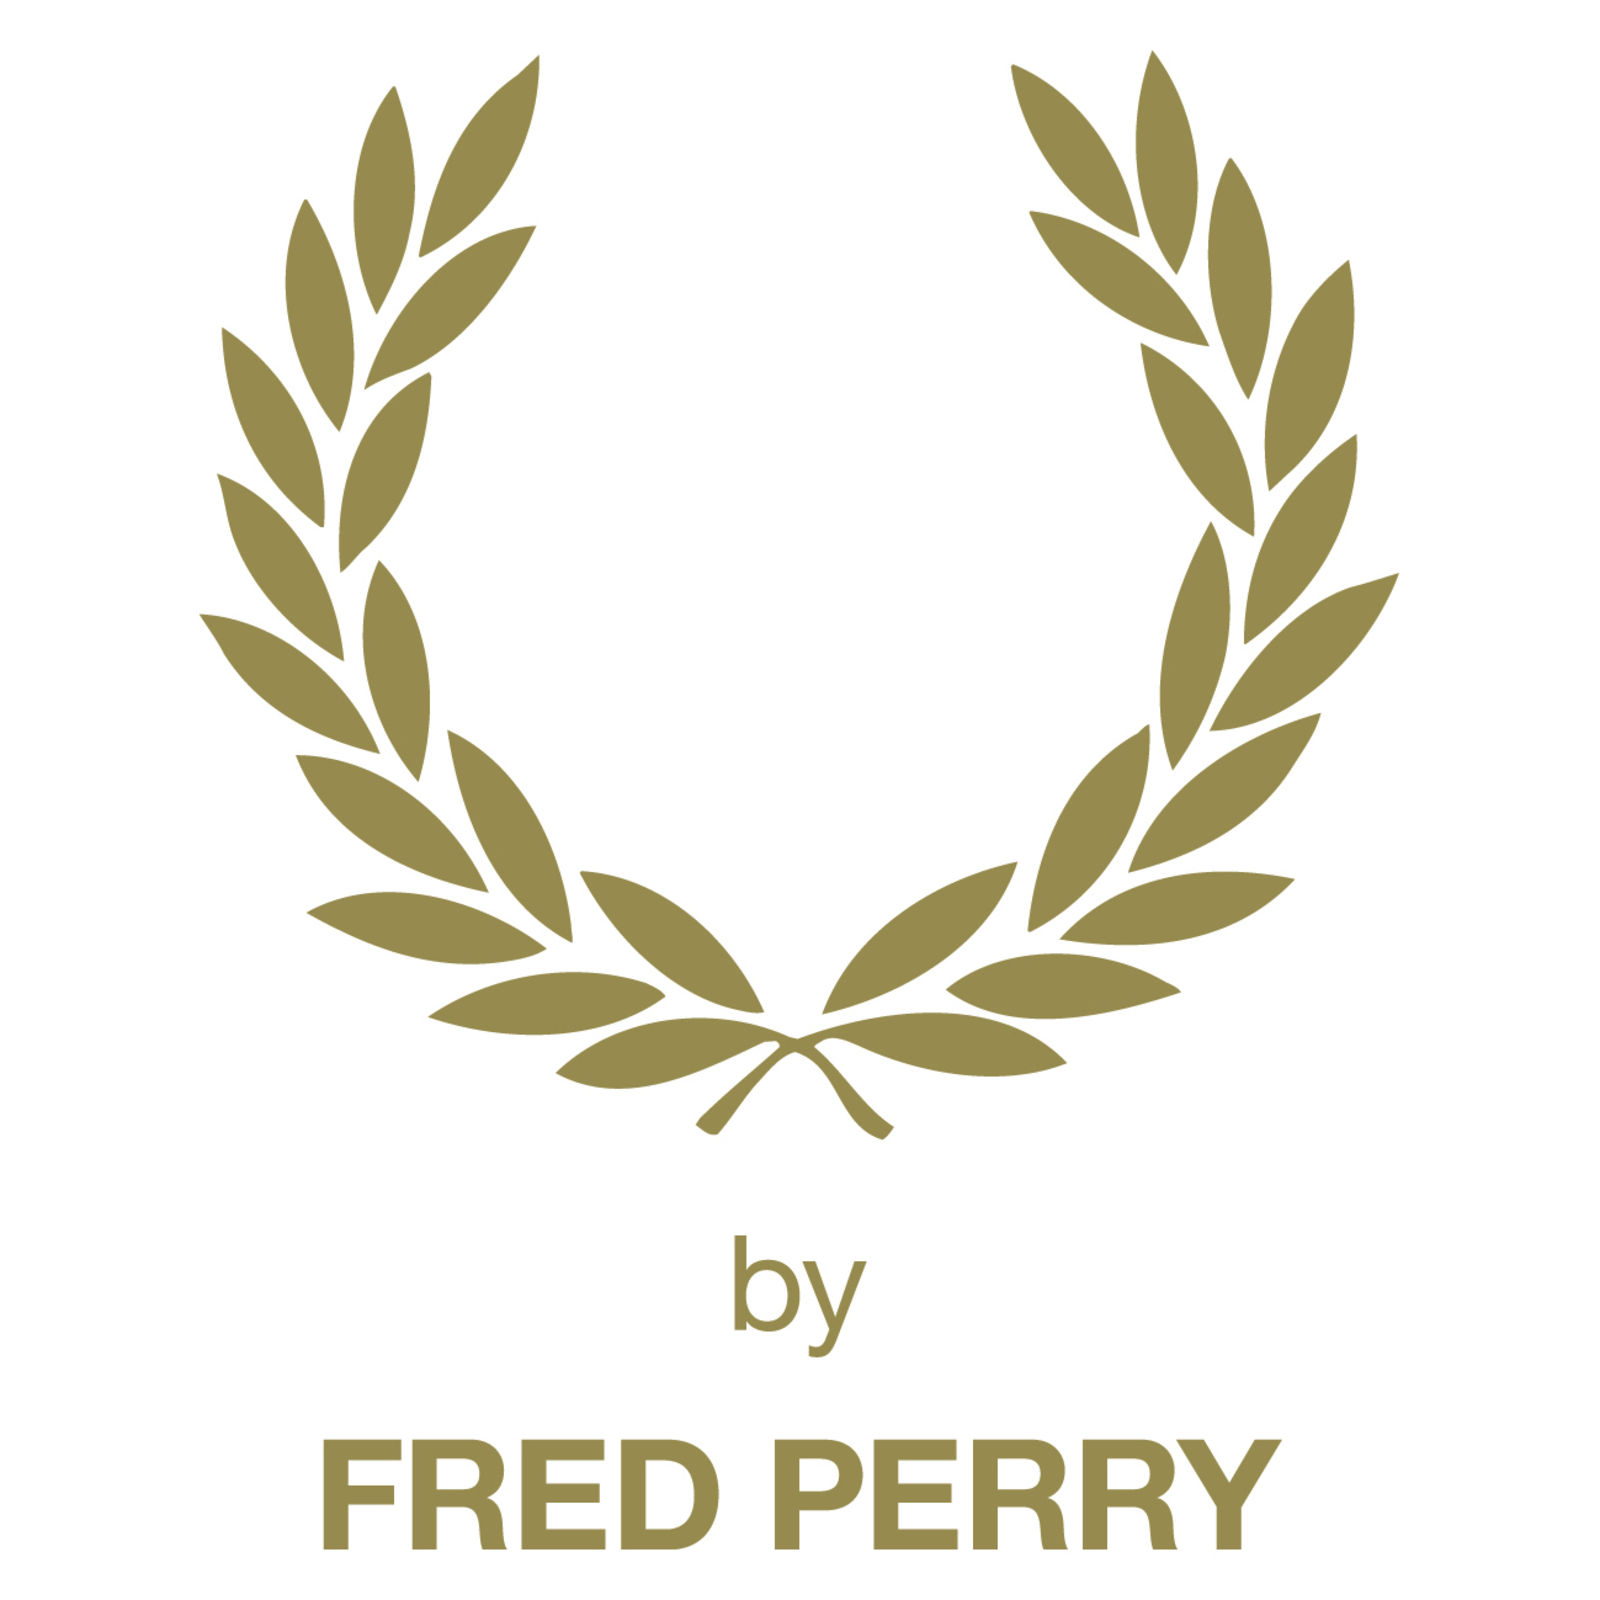 FRED PERRY Laurel Wreath | Re-Issues (Изображение 1)